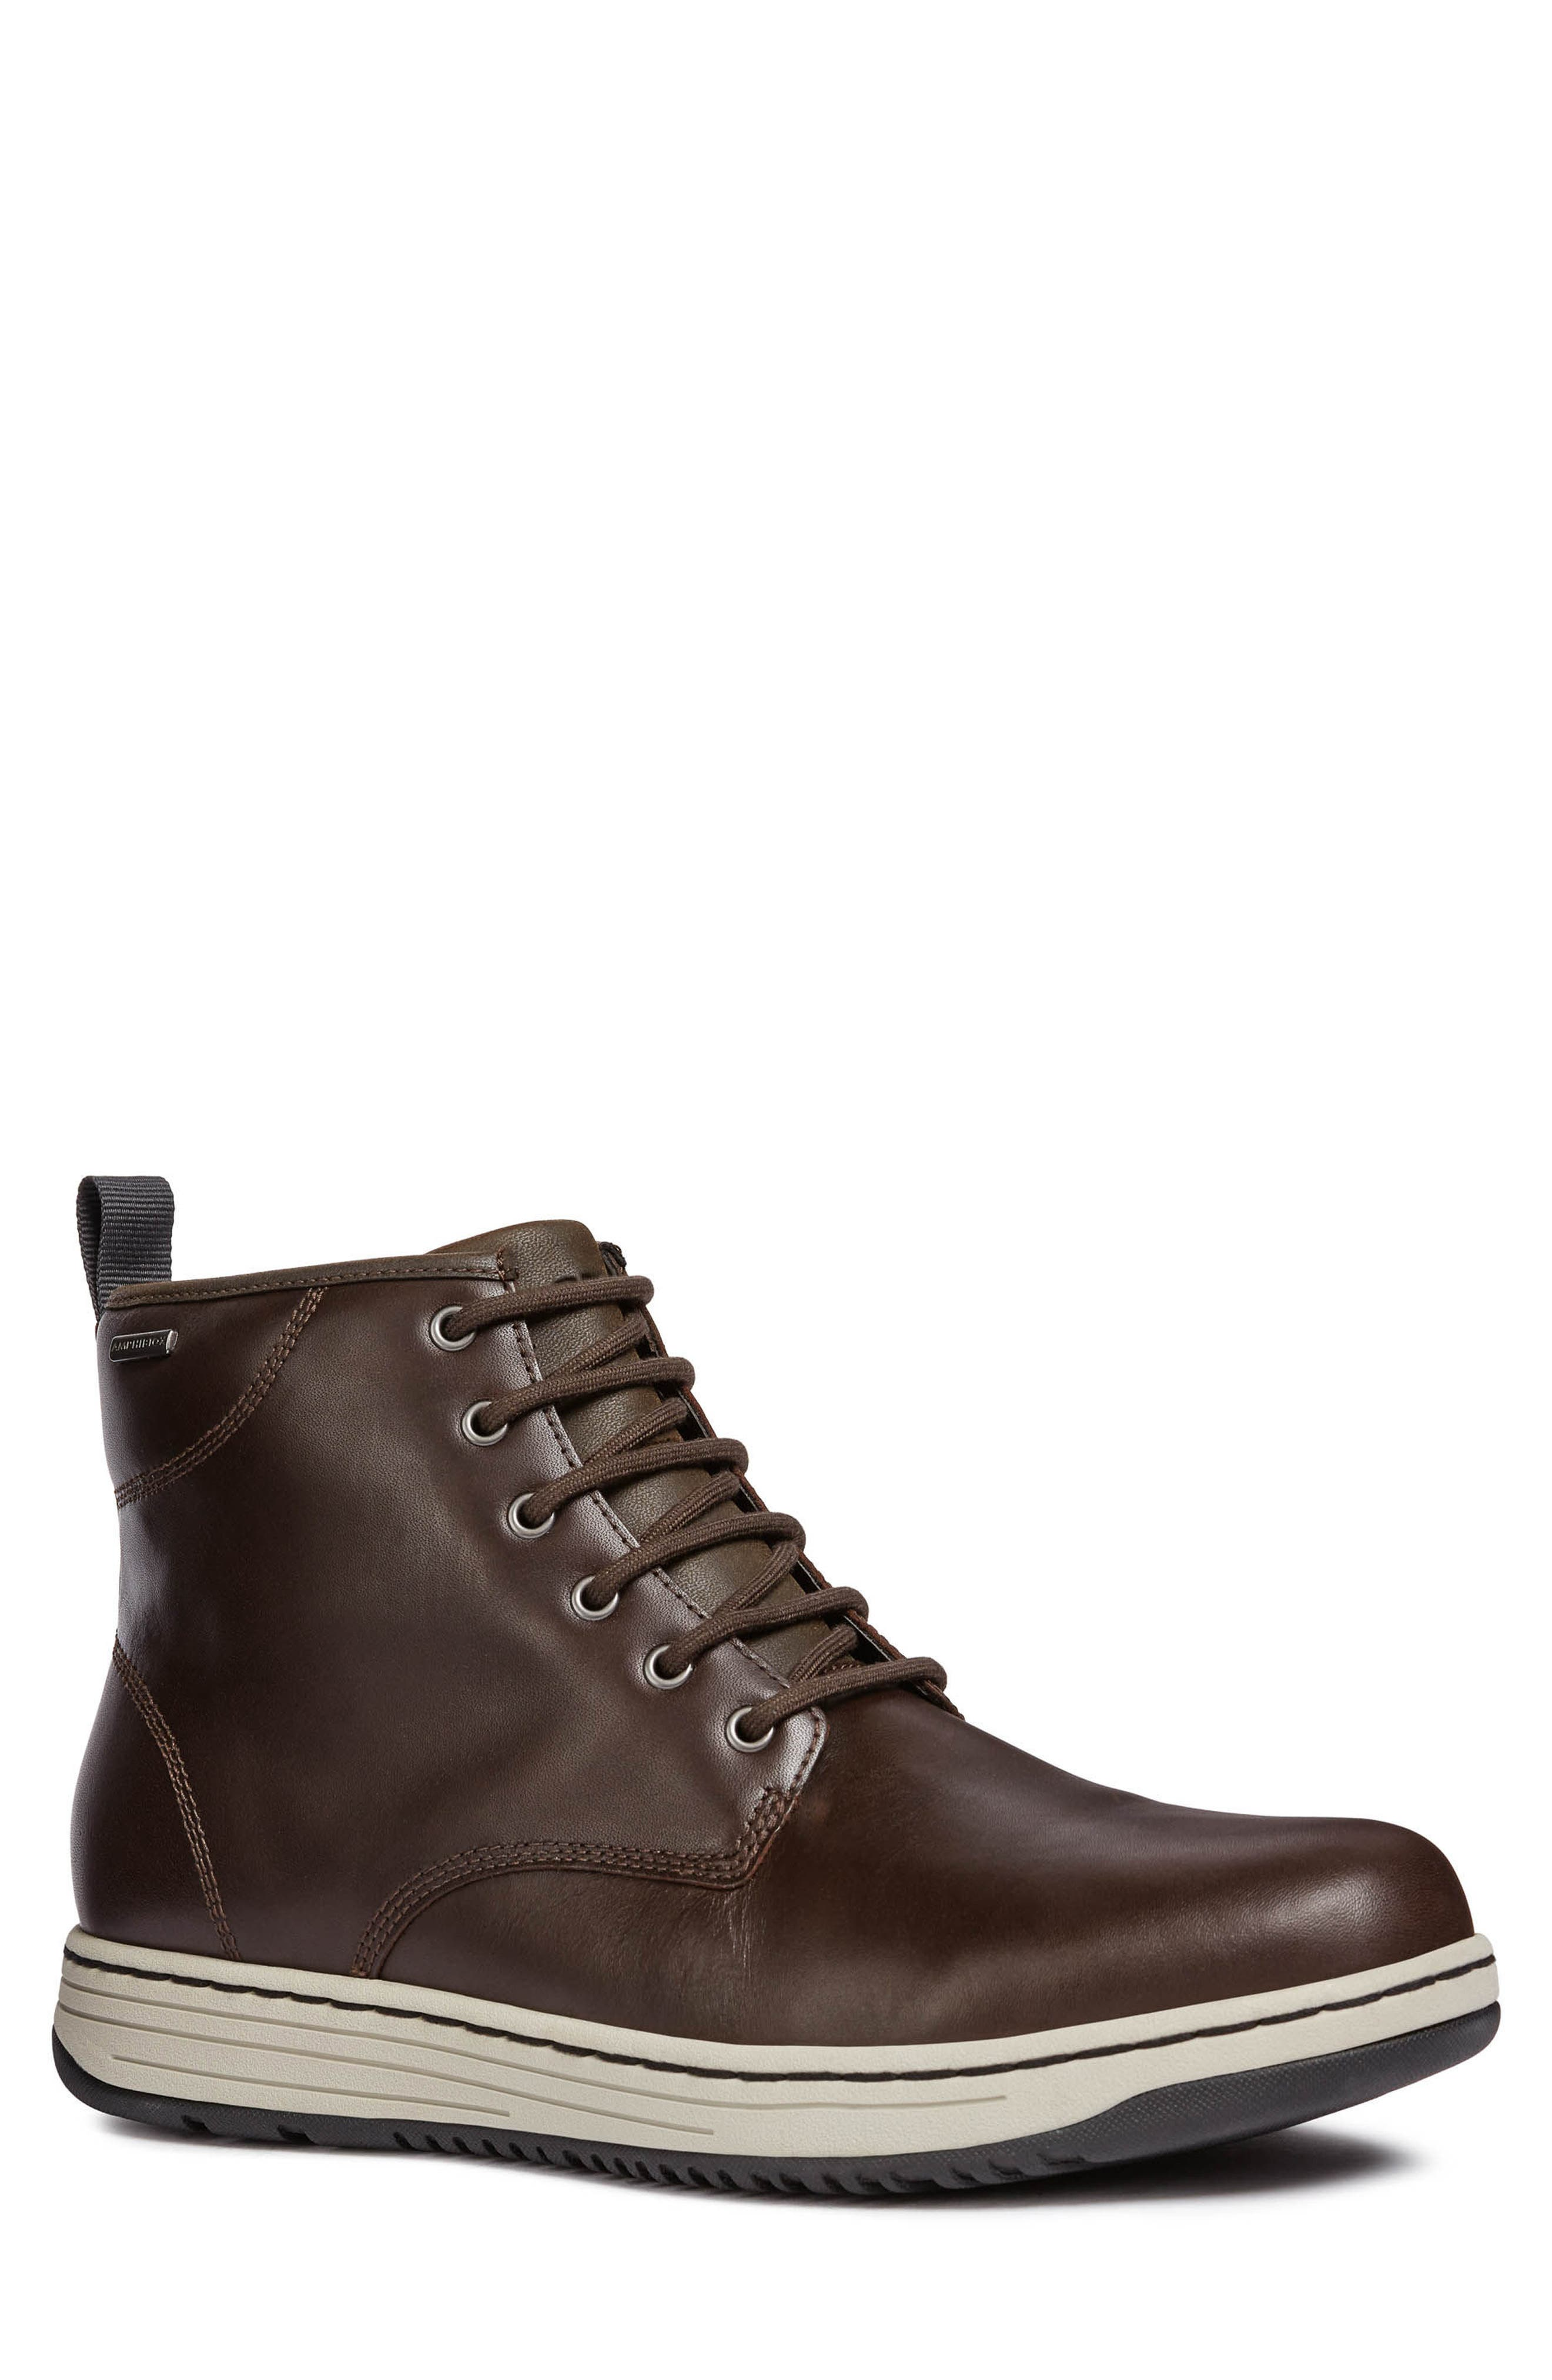 Geox Abroad Abx 2 Tall Lace-Up Boot, Brown